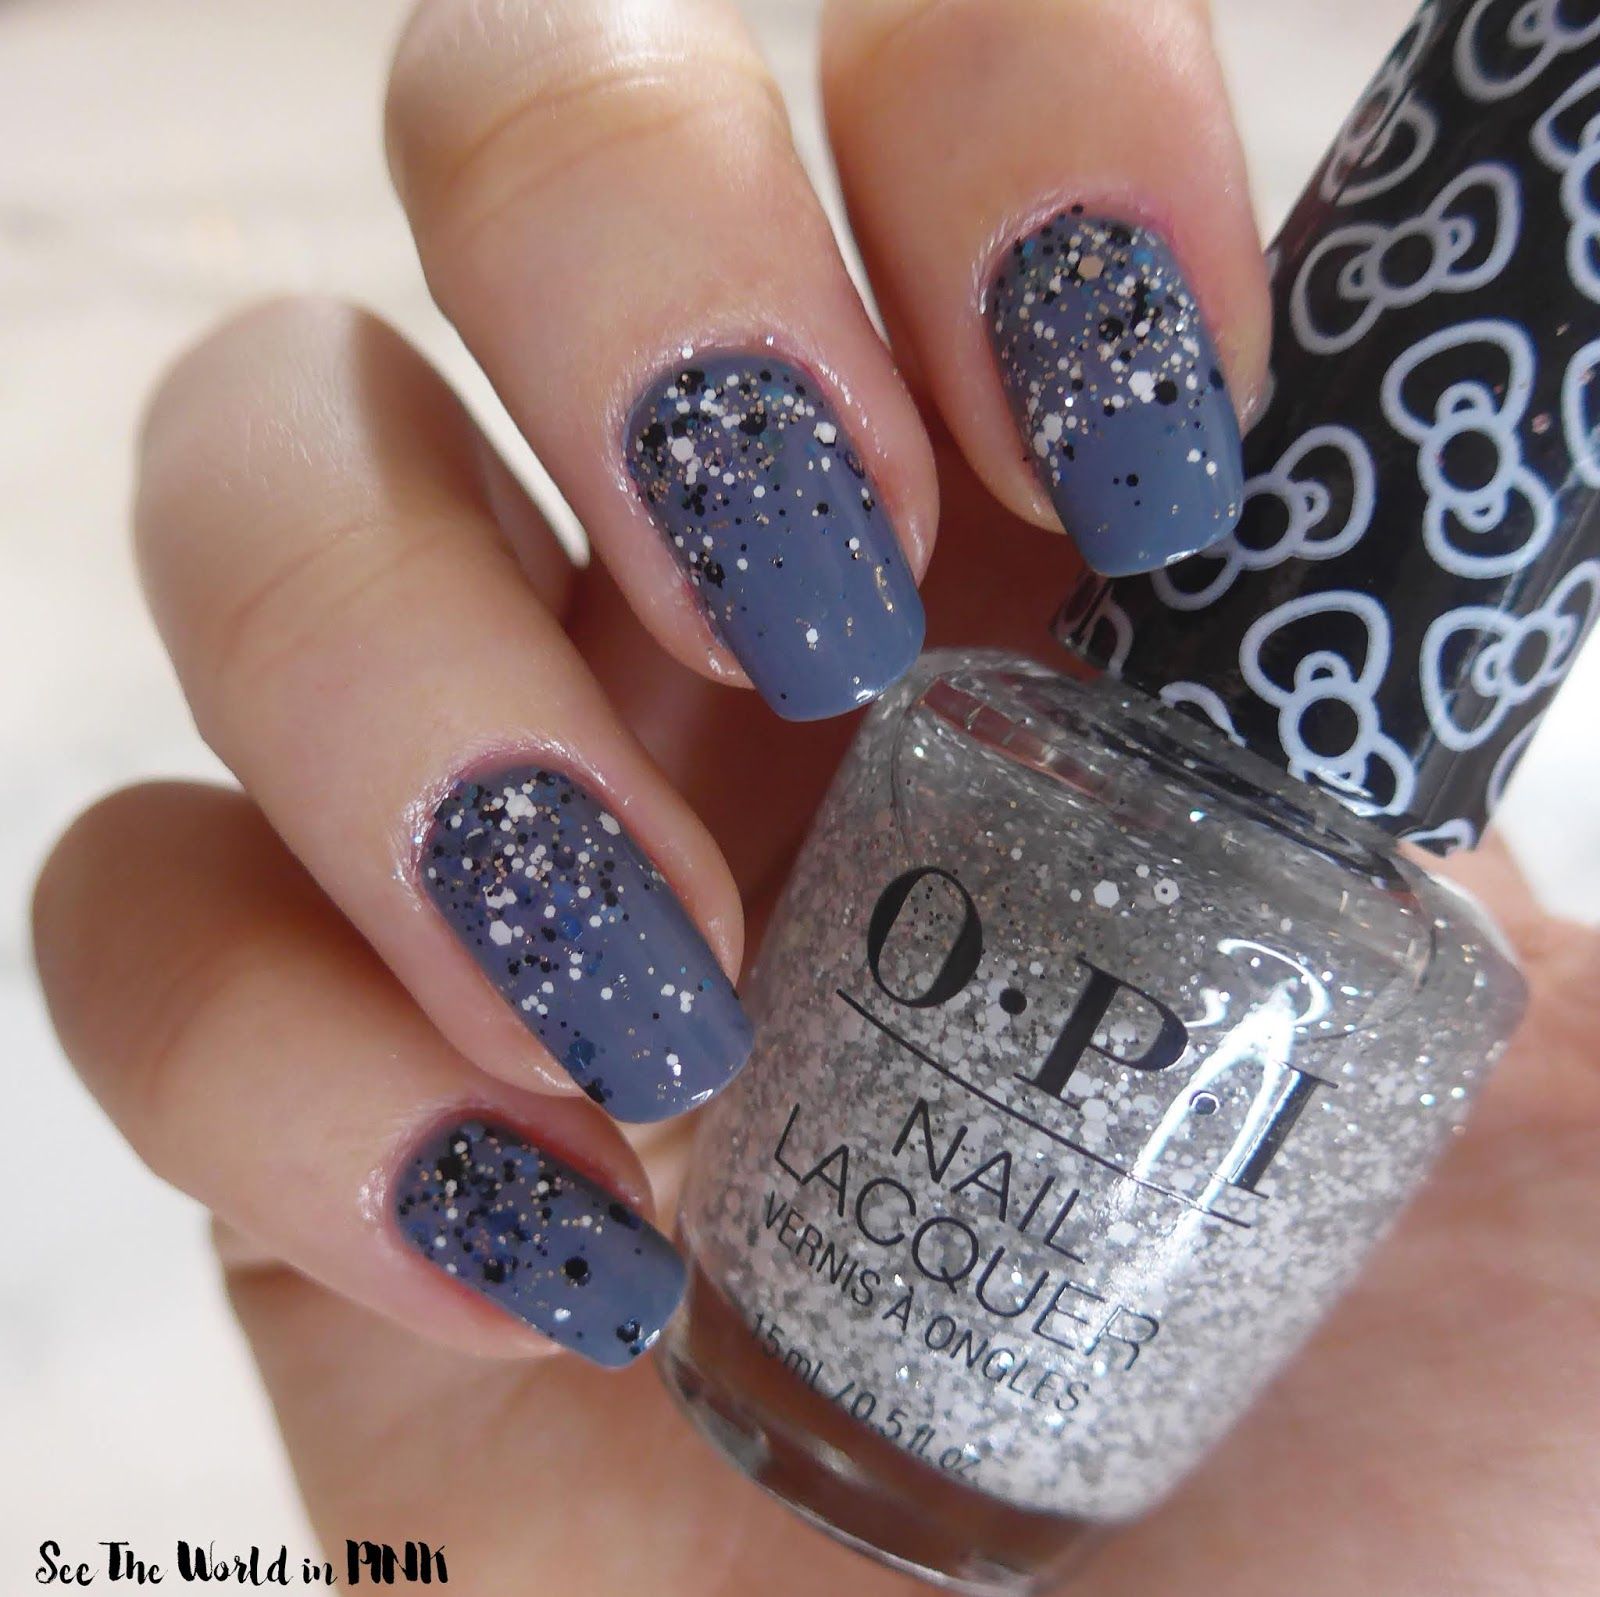 Manicure Monday - Winter Wonderland Nails!